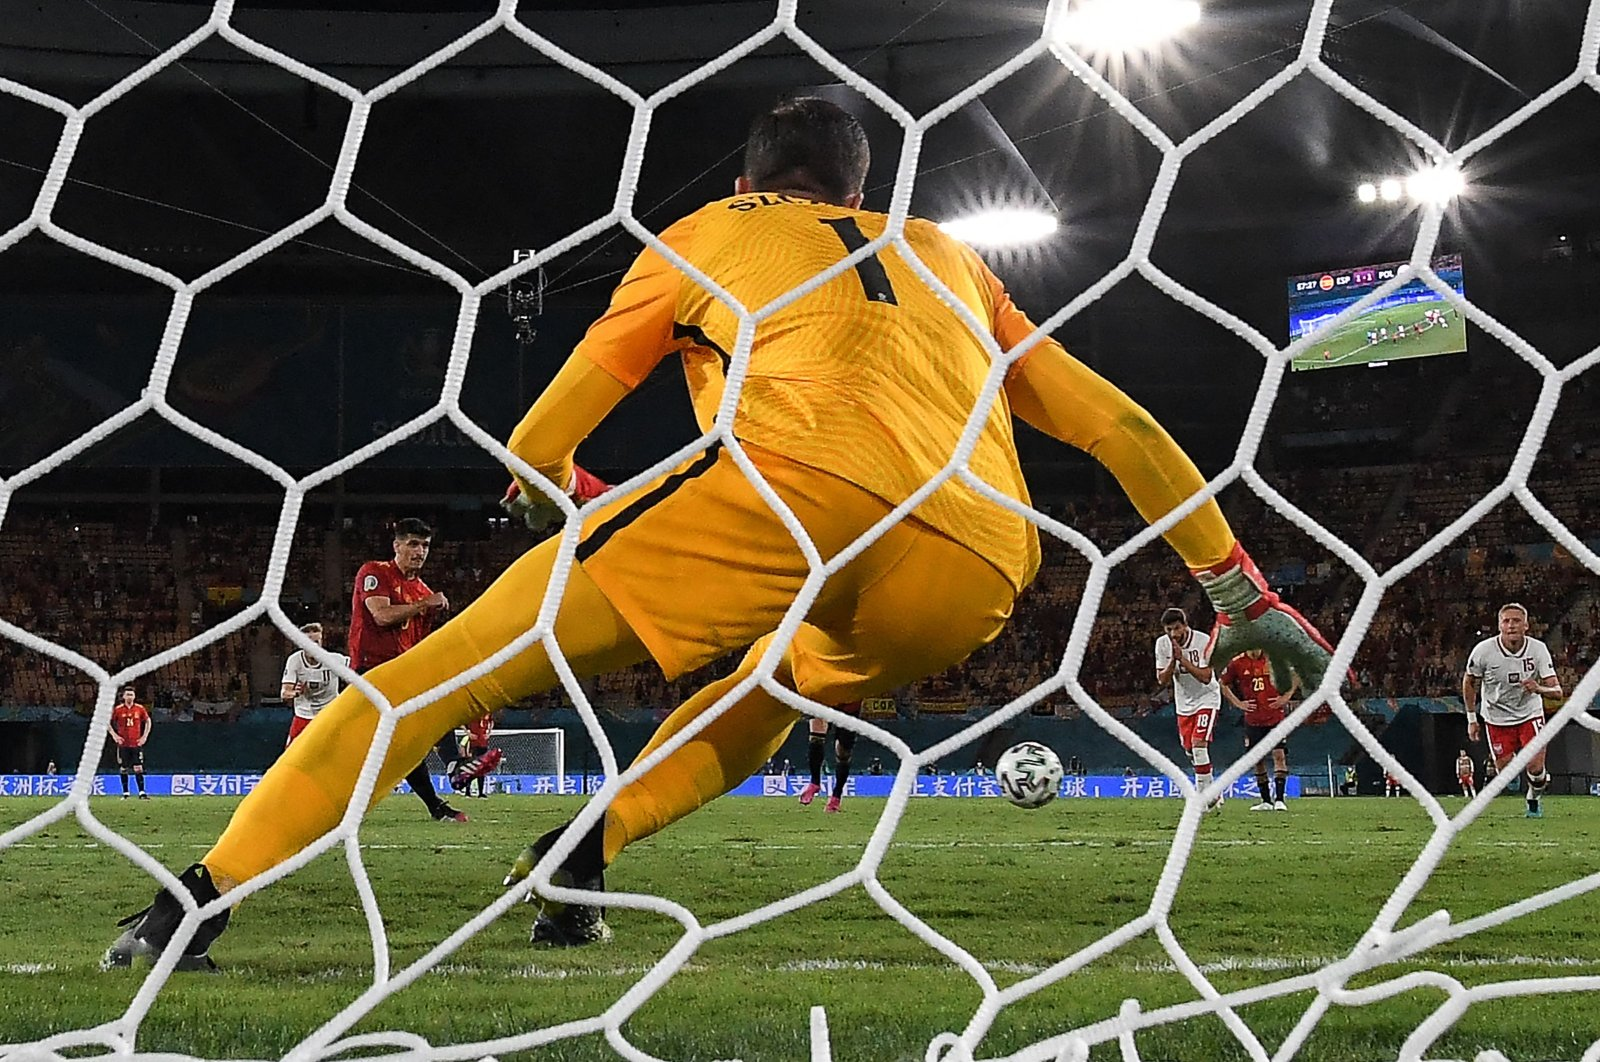 Spain's forward Gerard (L) fails to score a penalty past Poland's goalkeeper Wojciech Szczesny during the UEFA EURO 2020 Group E football match between Spain and Poland at La Cartuja Stadium in Seville, Spain, June 19, 2021. (AFP Photo)